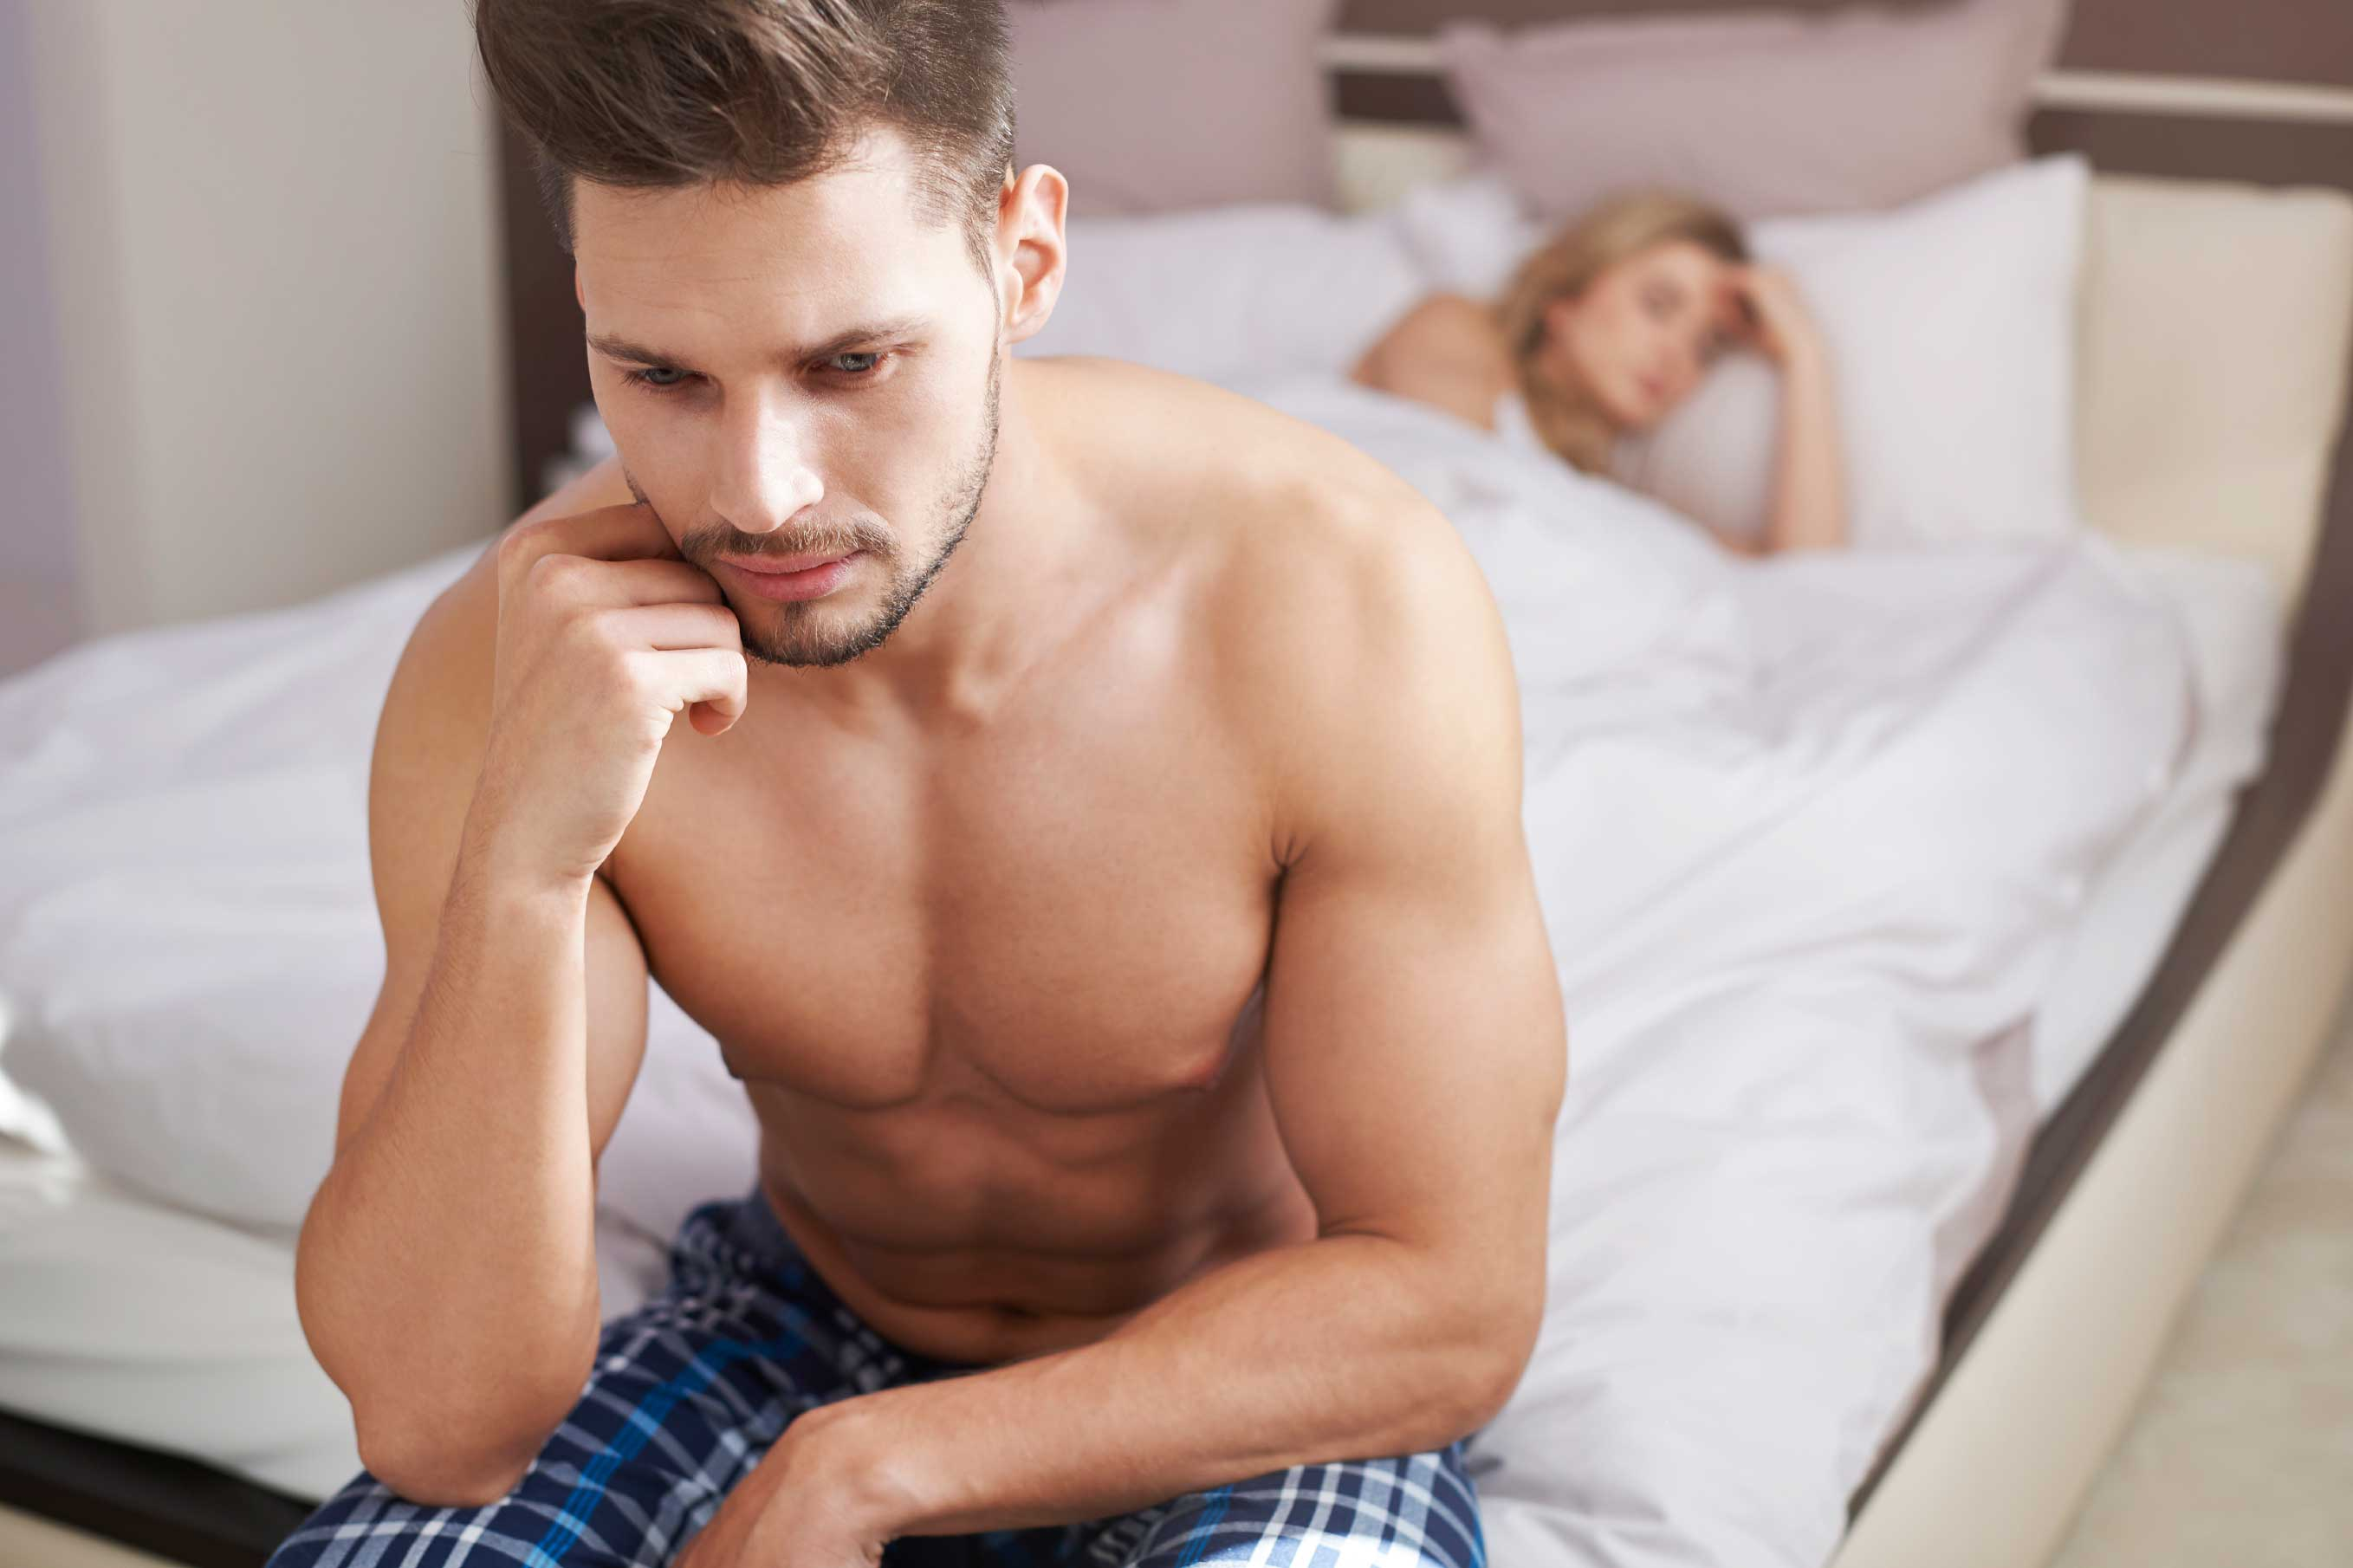 Men losing interest in sex